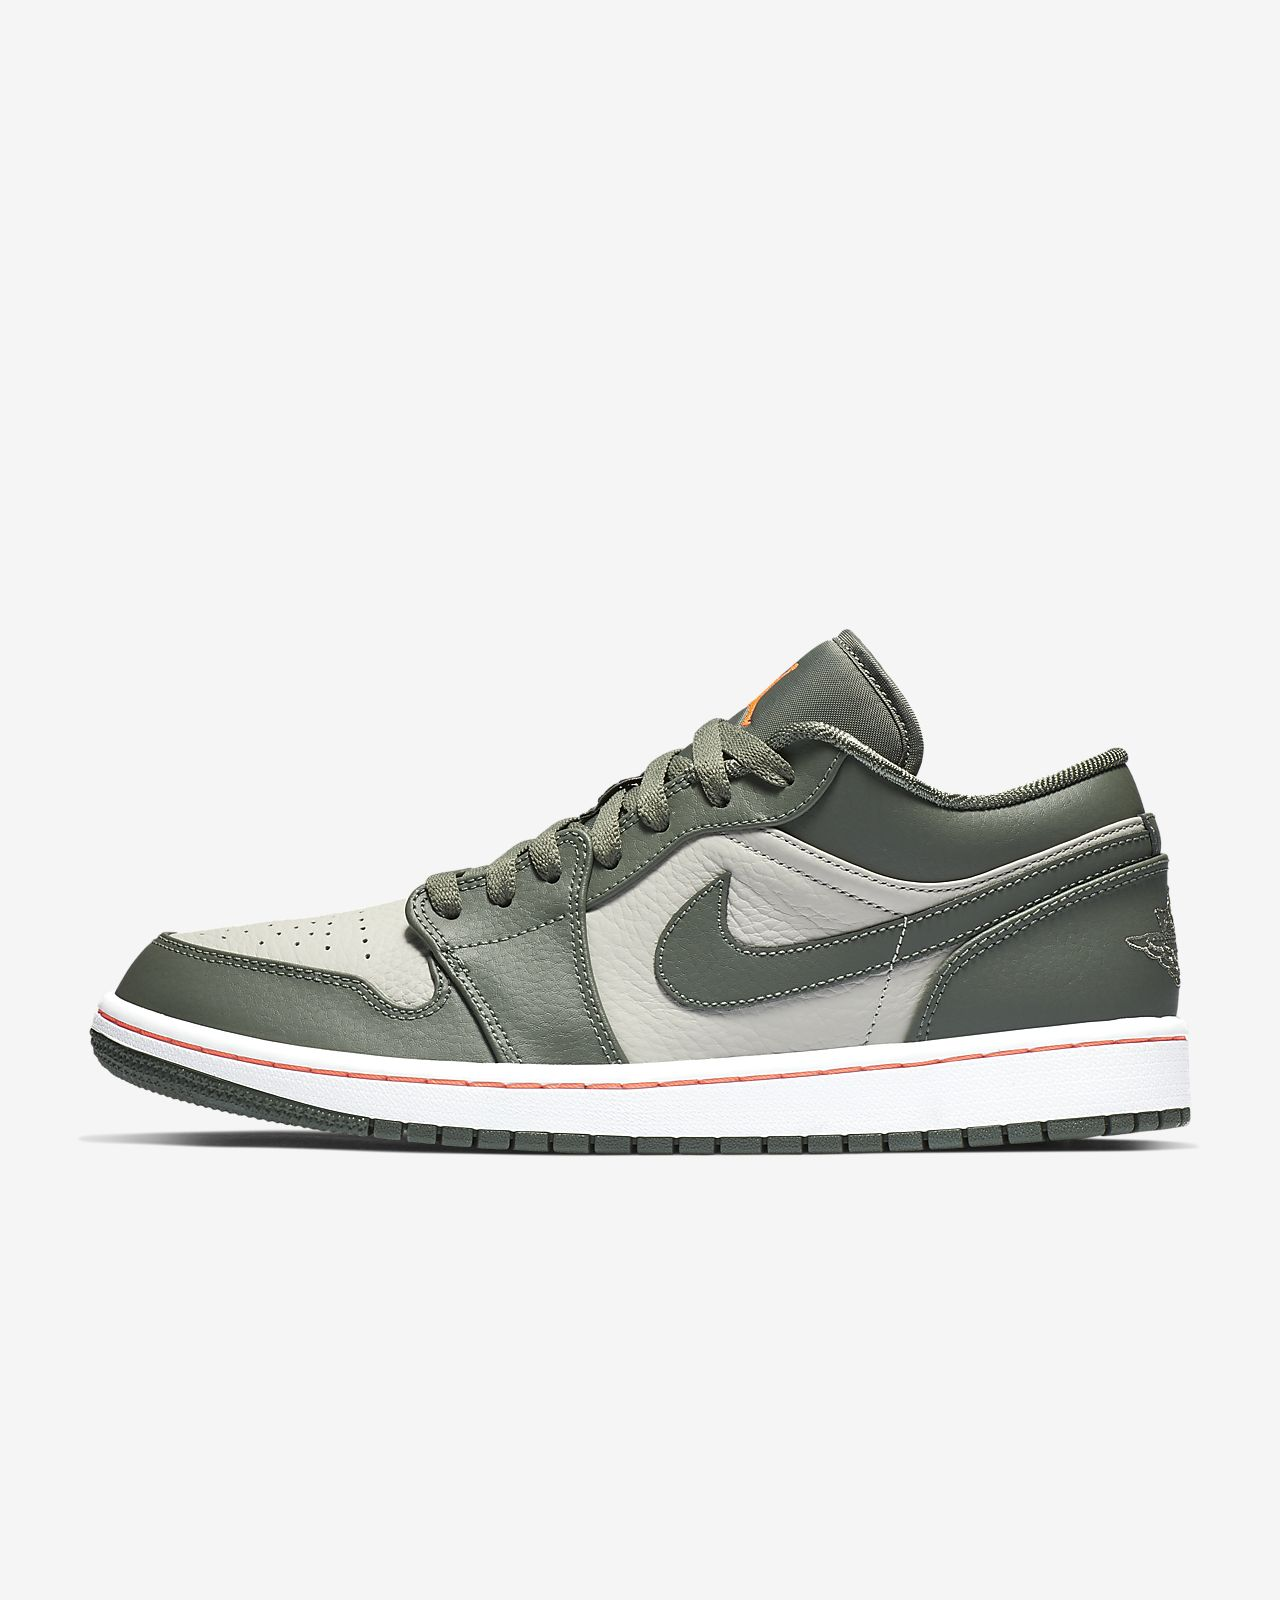 best website 34c1e 7ac07 nike air jordans 1 original sale in india today